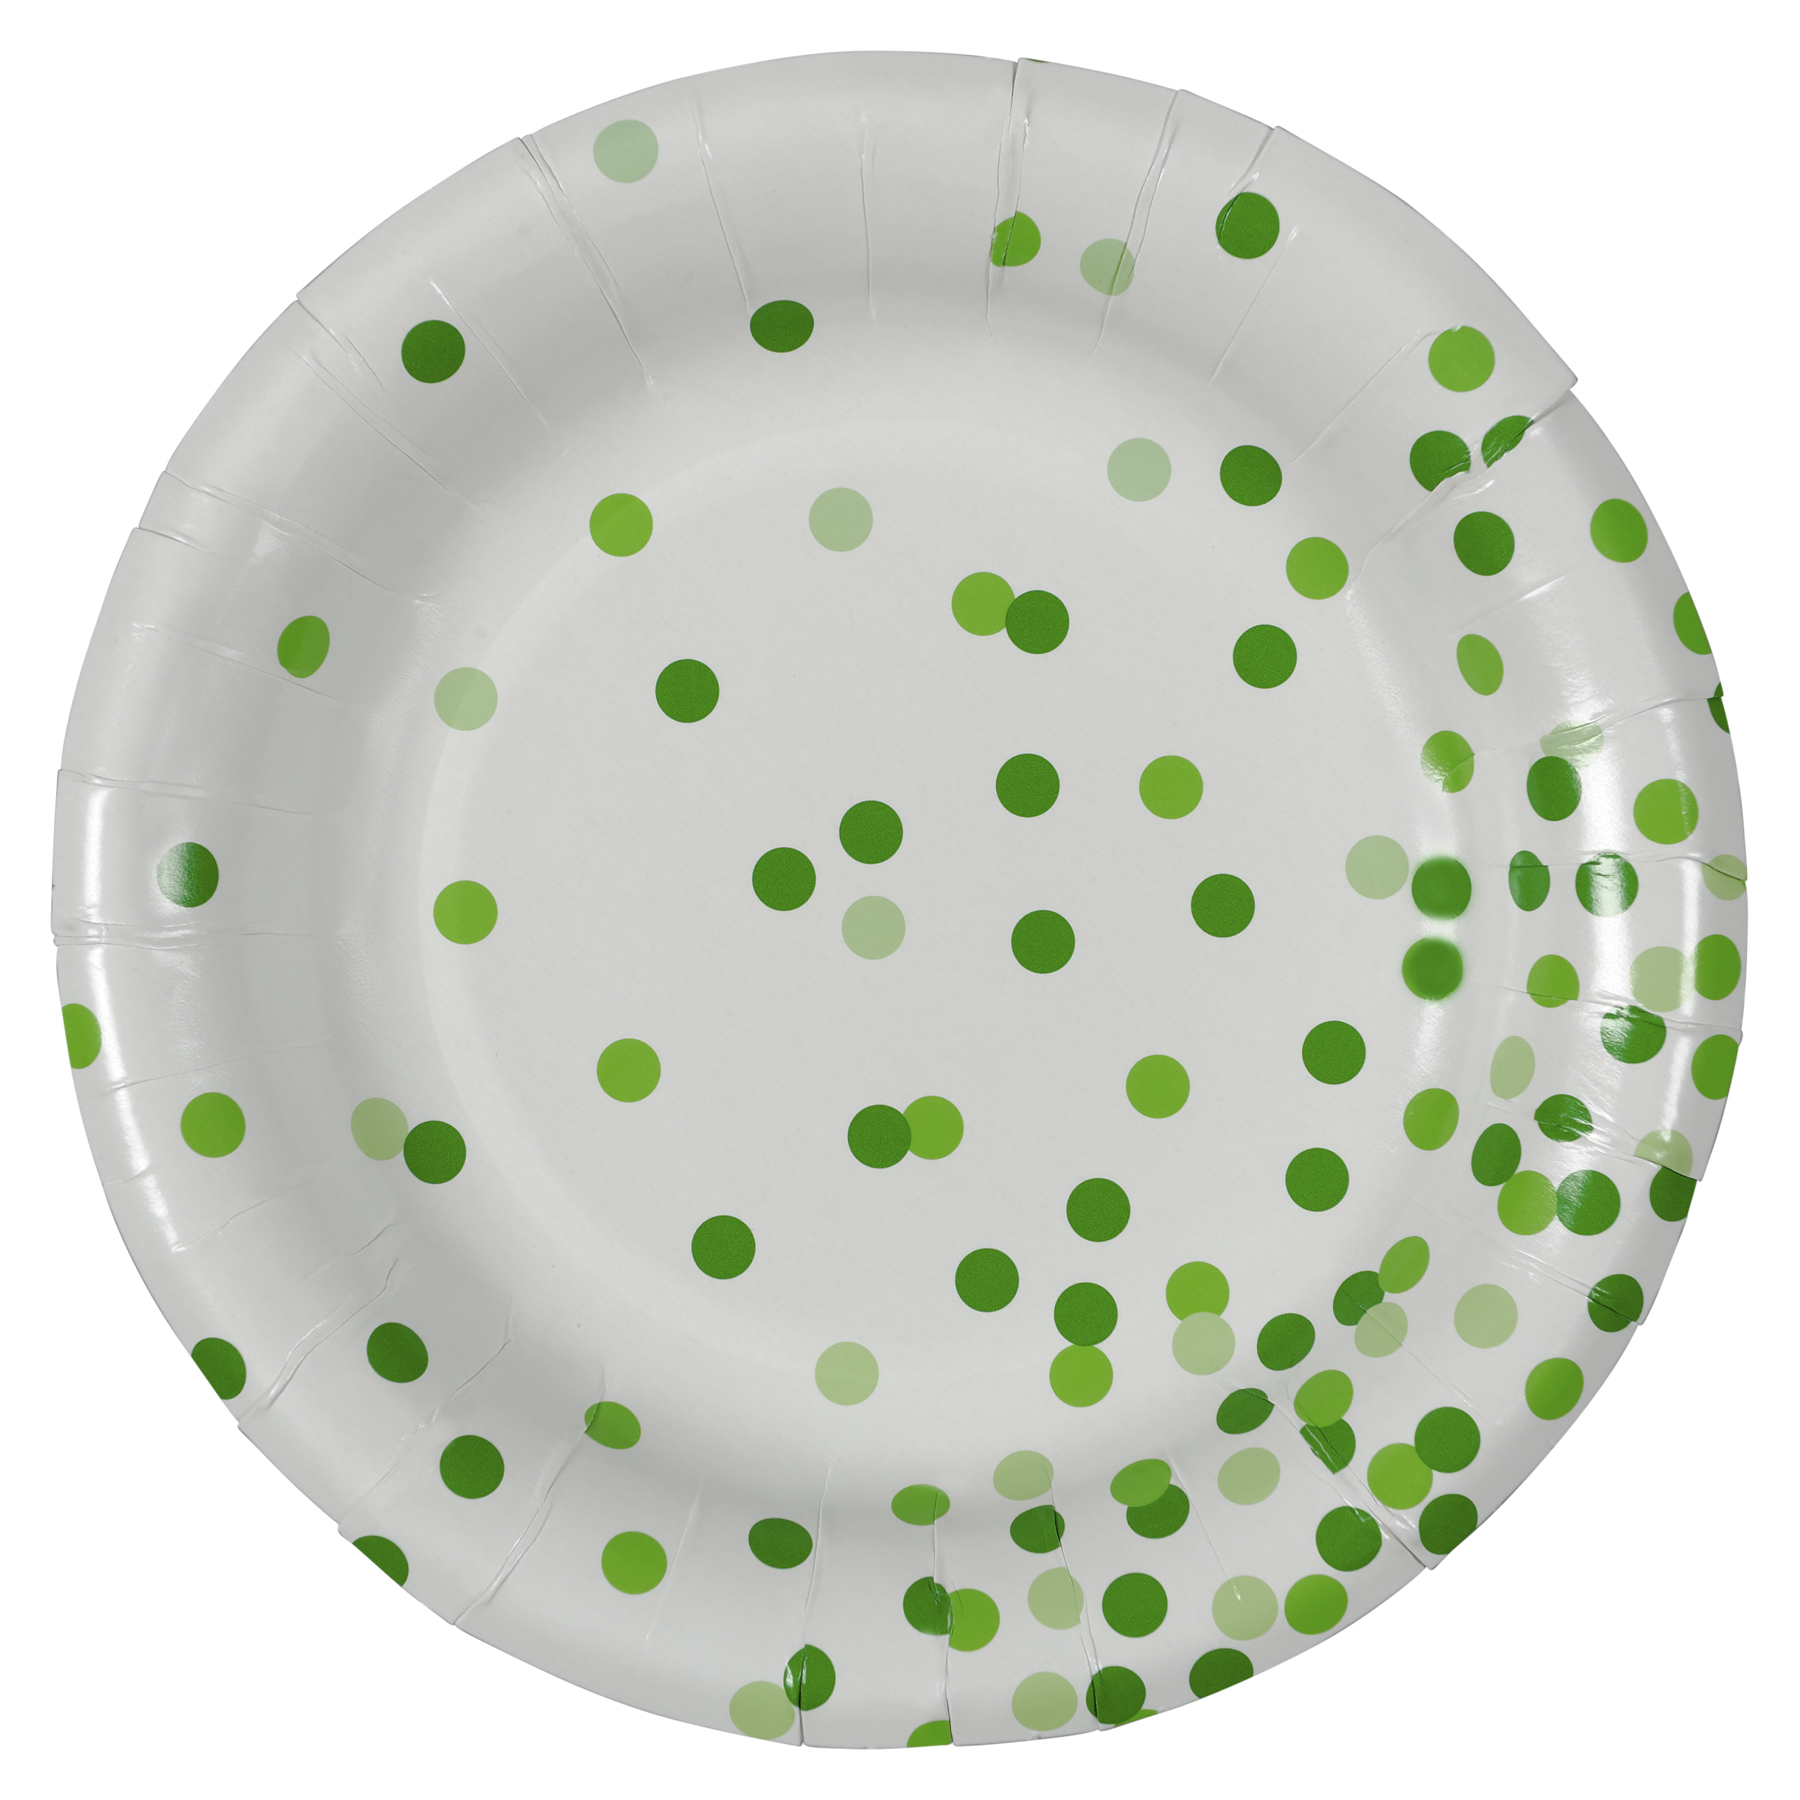 Green Dots Round Paper Plates By Celebrate It™  sc 1 st  Michaels Weddings & Buy the Green Dots Round Paper Plates By Celebrate It™ at Michaels